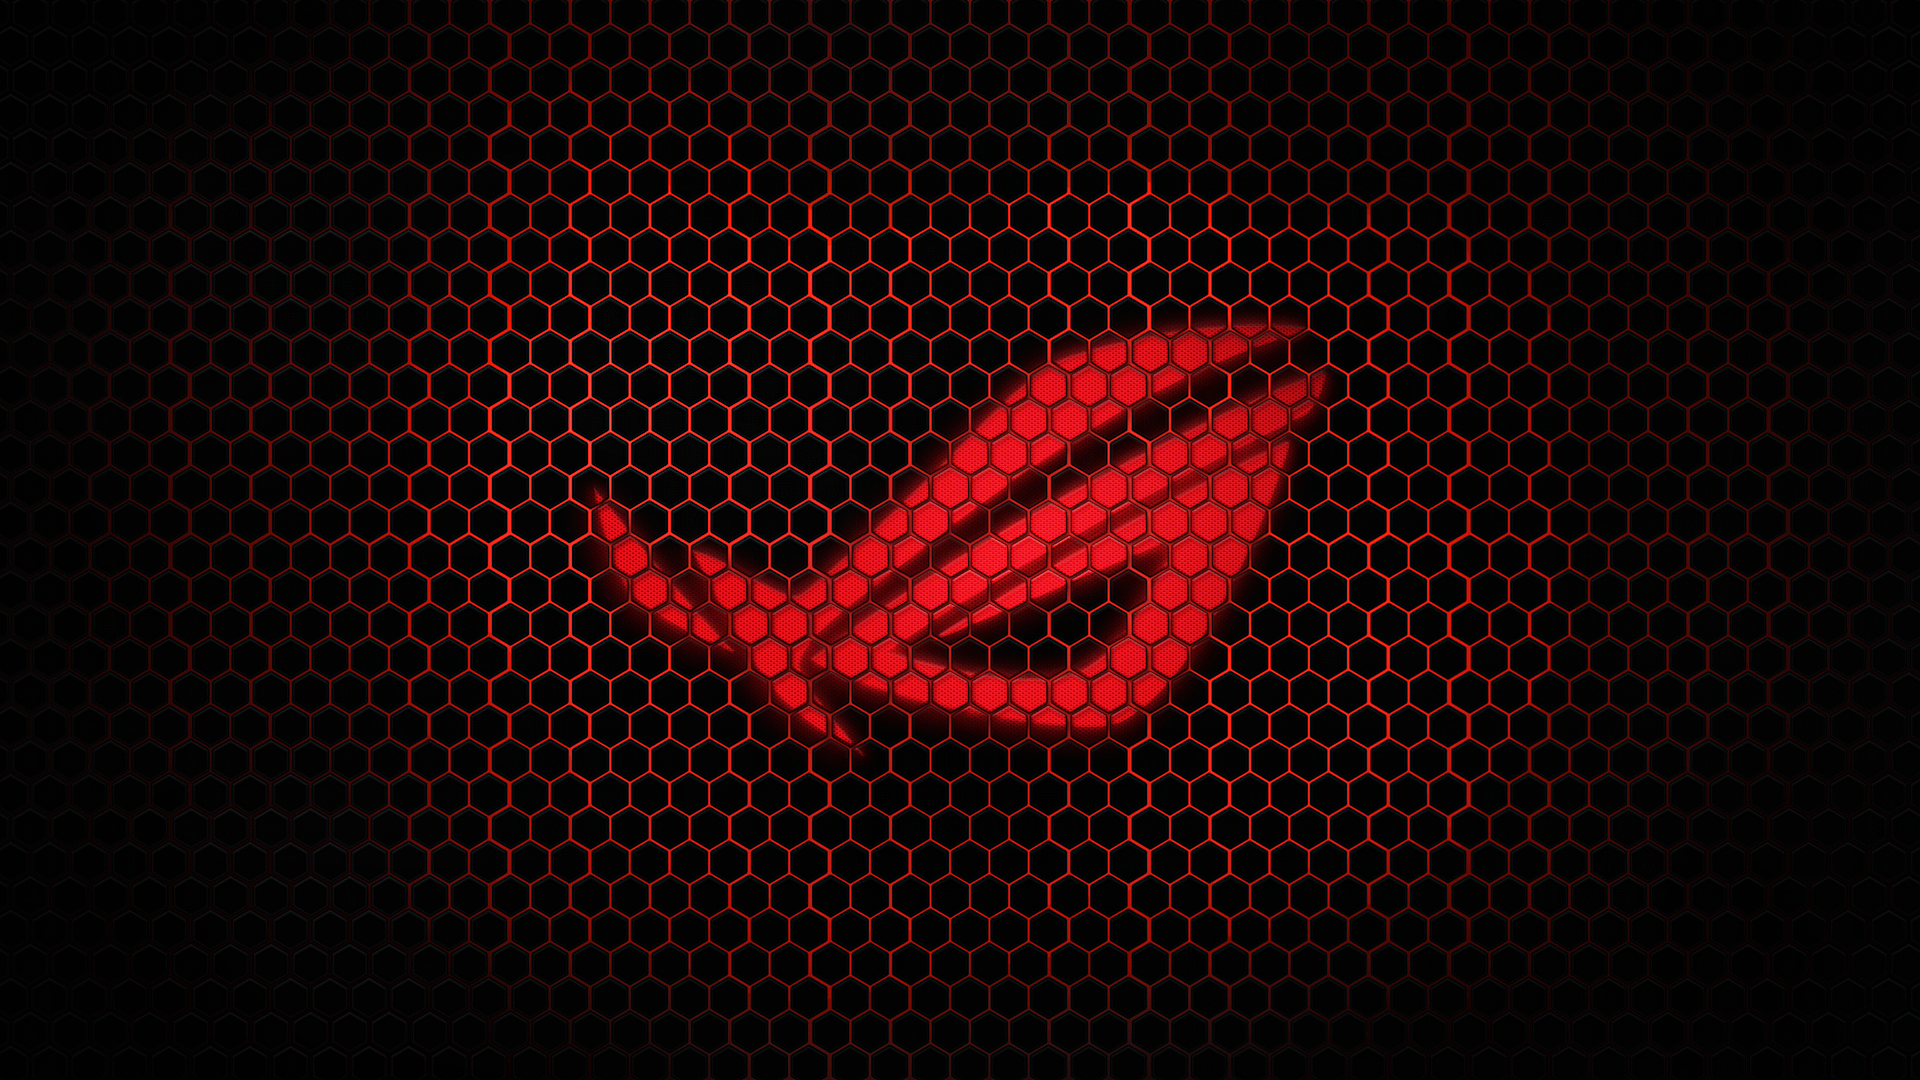 Red Asus Wallpaper: Red-Asus-ROG-Hexagon-1920x1080-HD-Wallpaper